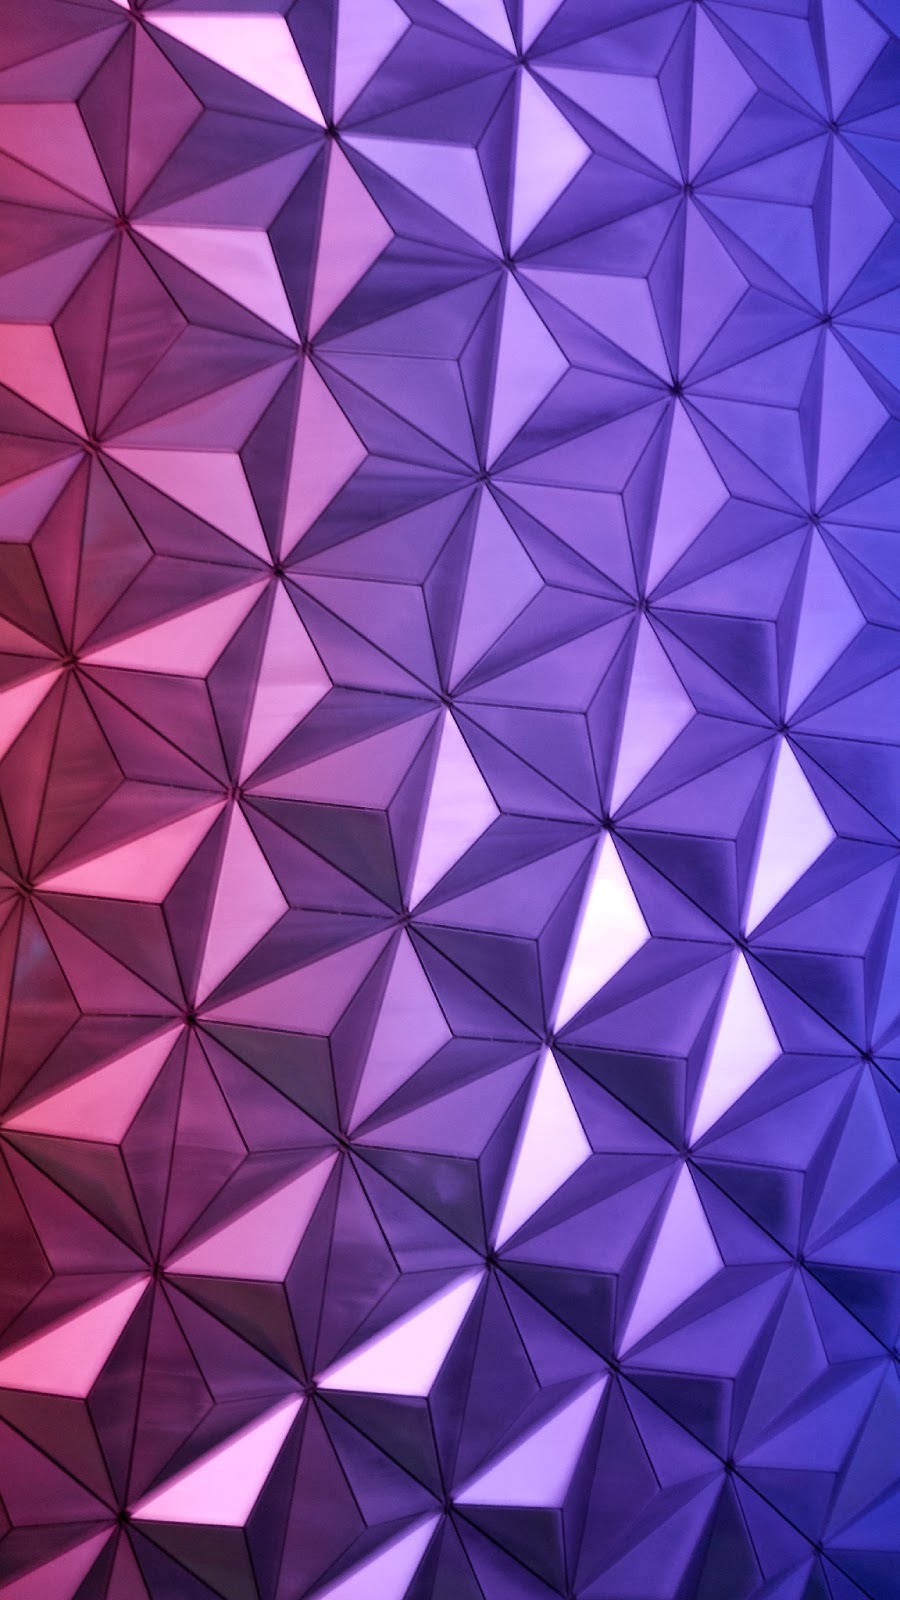 Aesthetic wallpaper